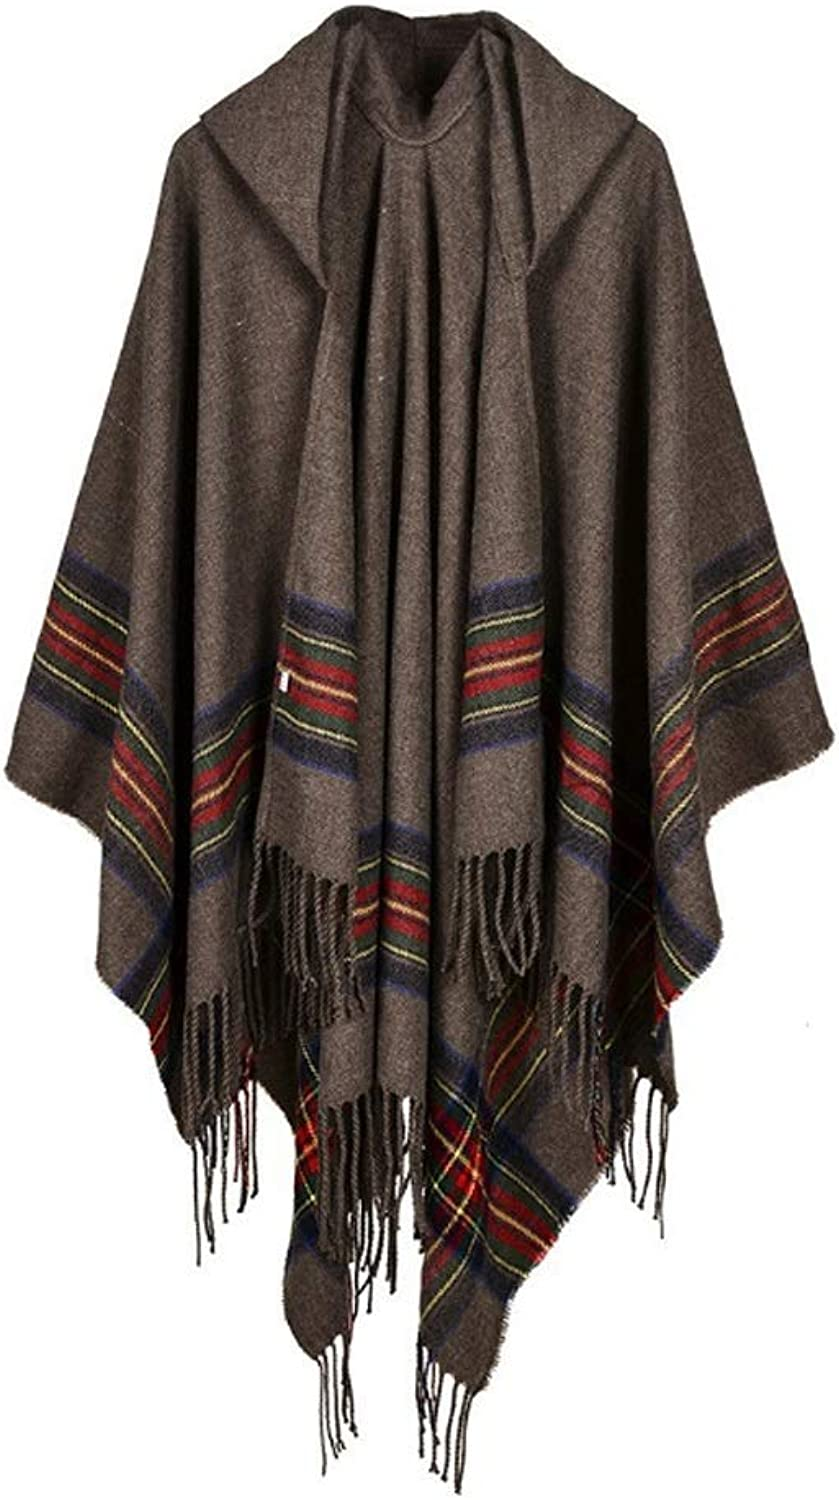 MSchunou Outdoor Travel Winter Striped Tassel Hooded Long Cloak Shawl, Teacher's Mother's Best Gift, Beautiful Soft Warm Shawl, Suitable for More Places to use, Classic Fashion Ladies Shawl